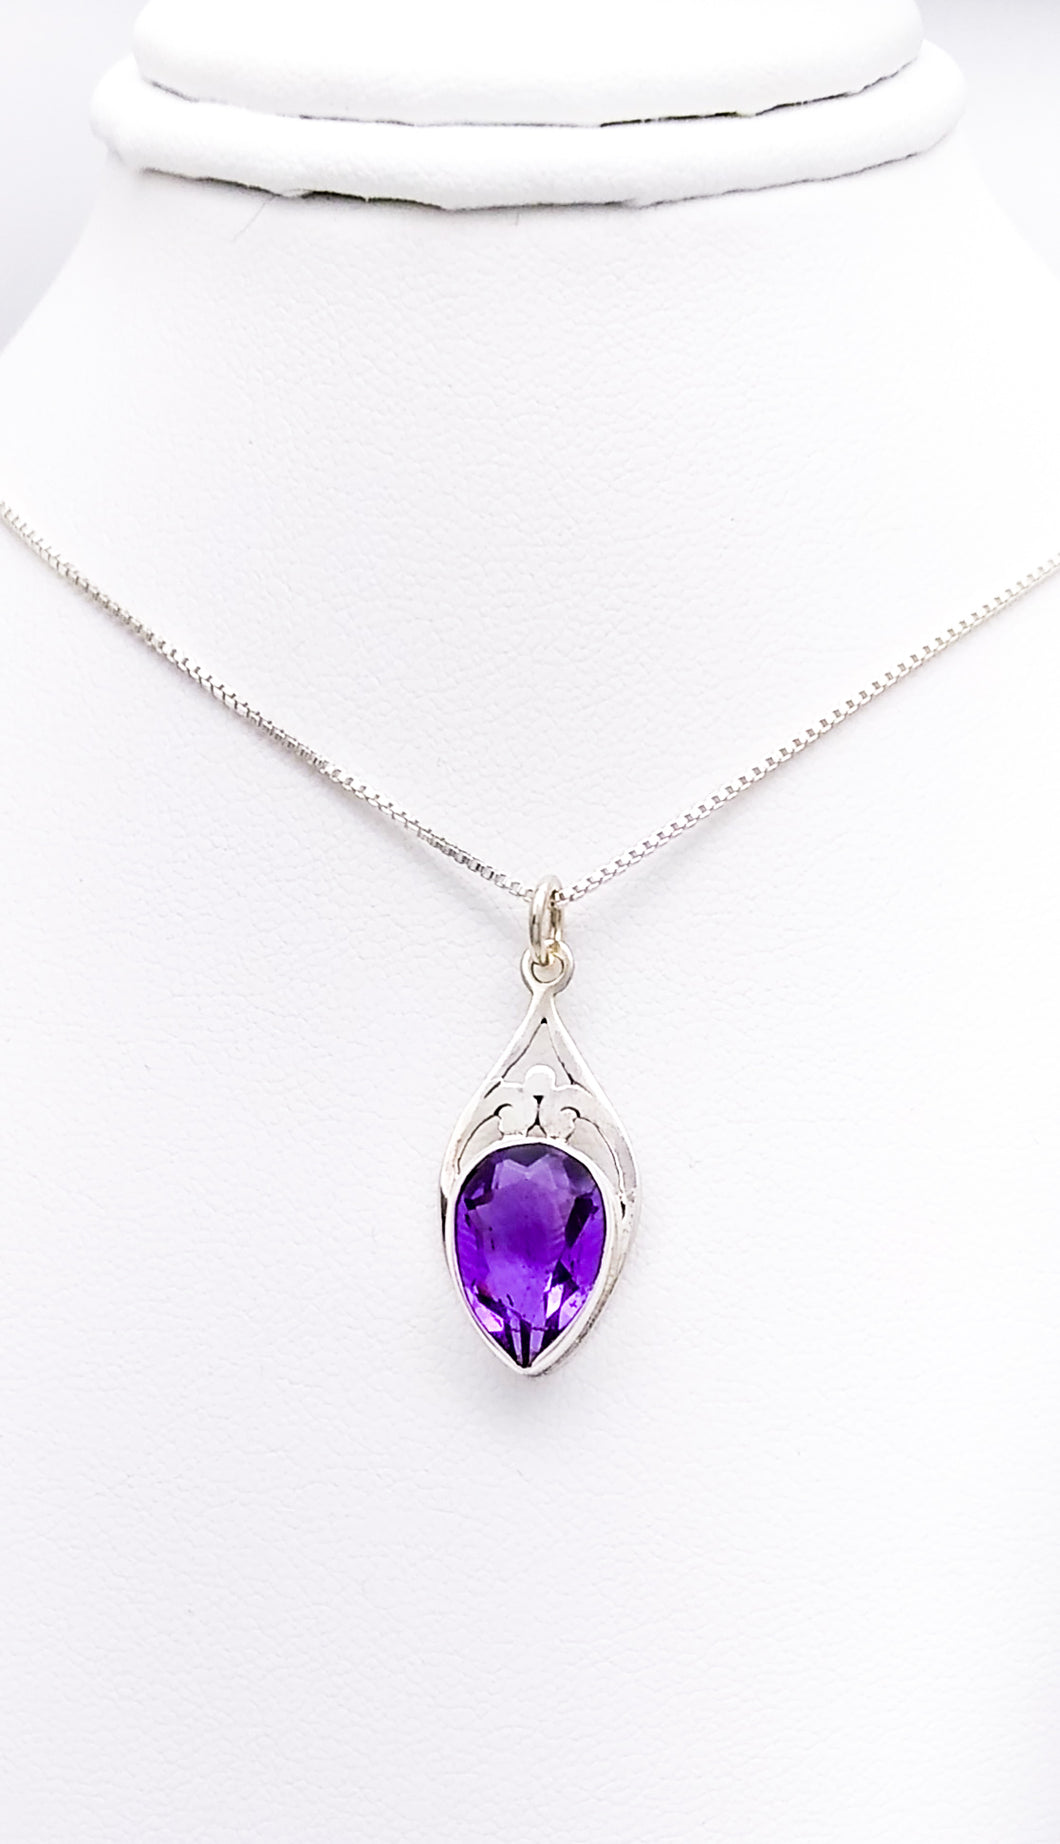 Sterling diamond-shaped pendant with a faceted amethyst in an upside-down teardrop shape.